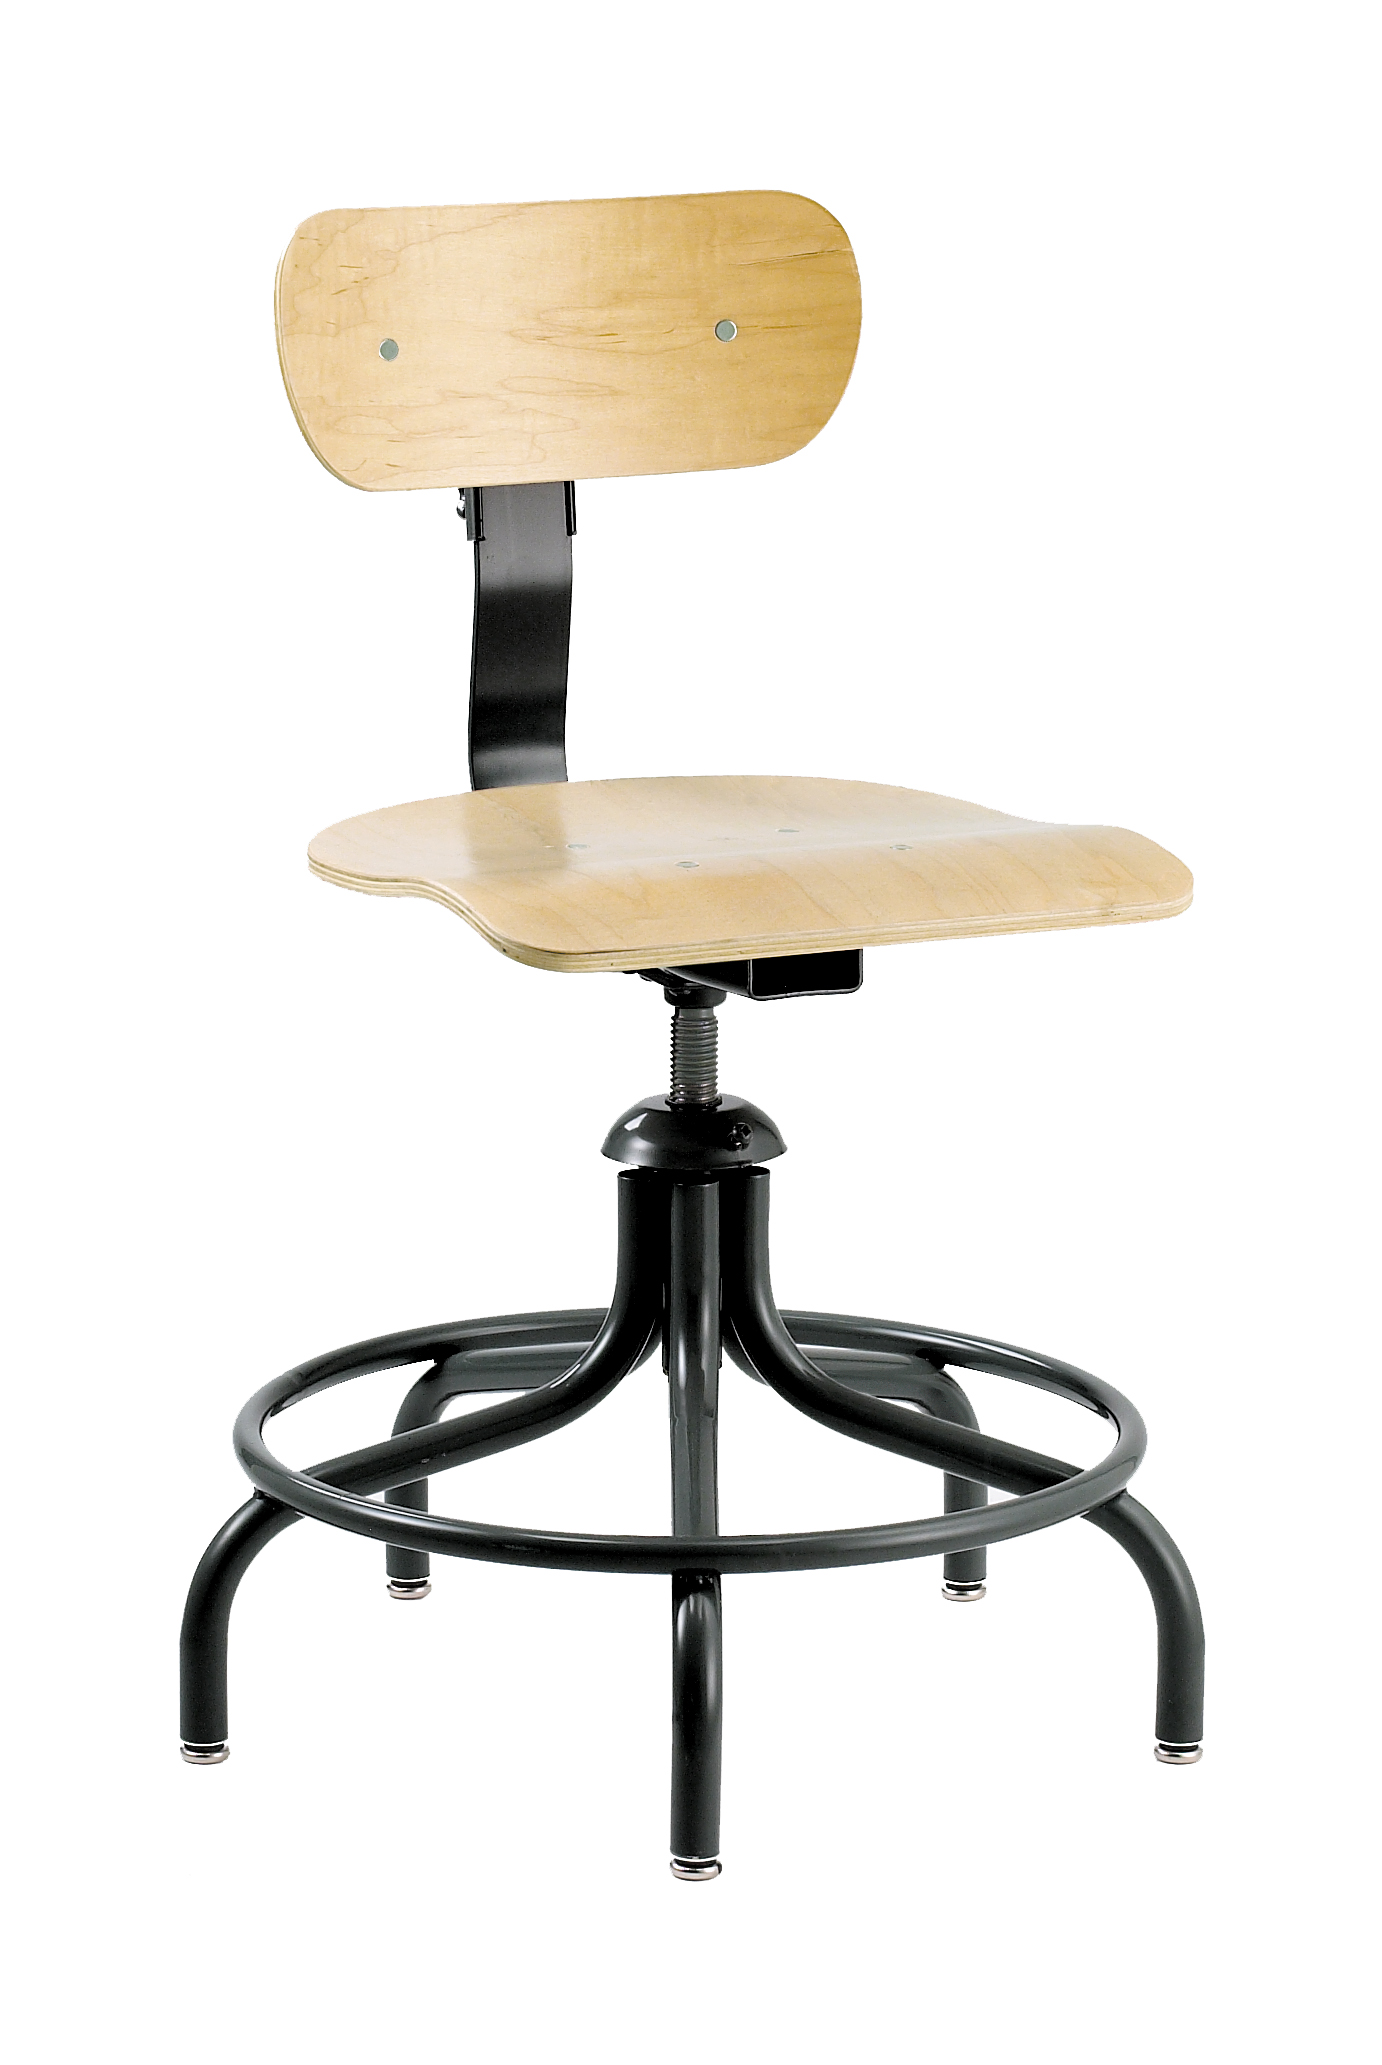 minimal chair height stand test nicole miller bevco 1300 5 leg swivel ii w plastic glides